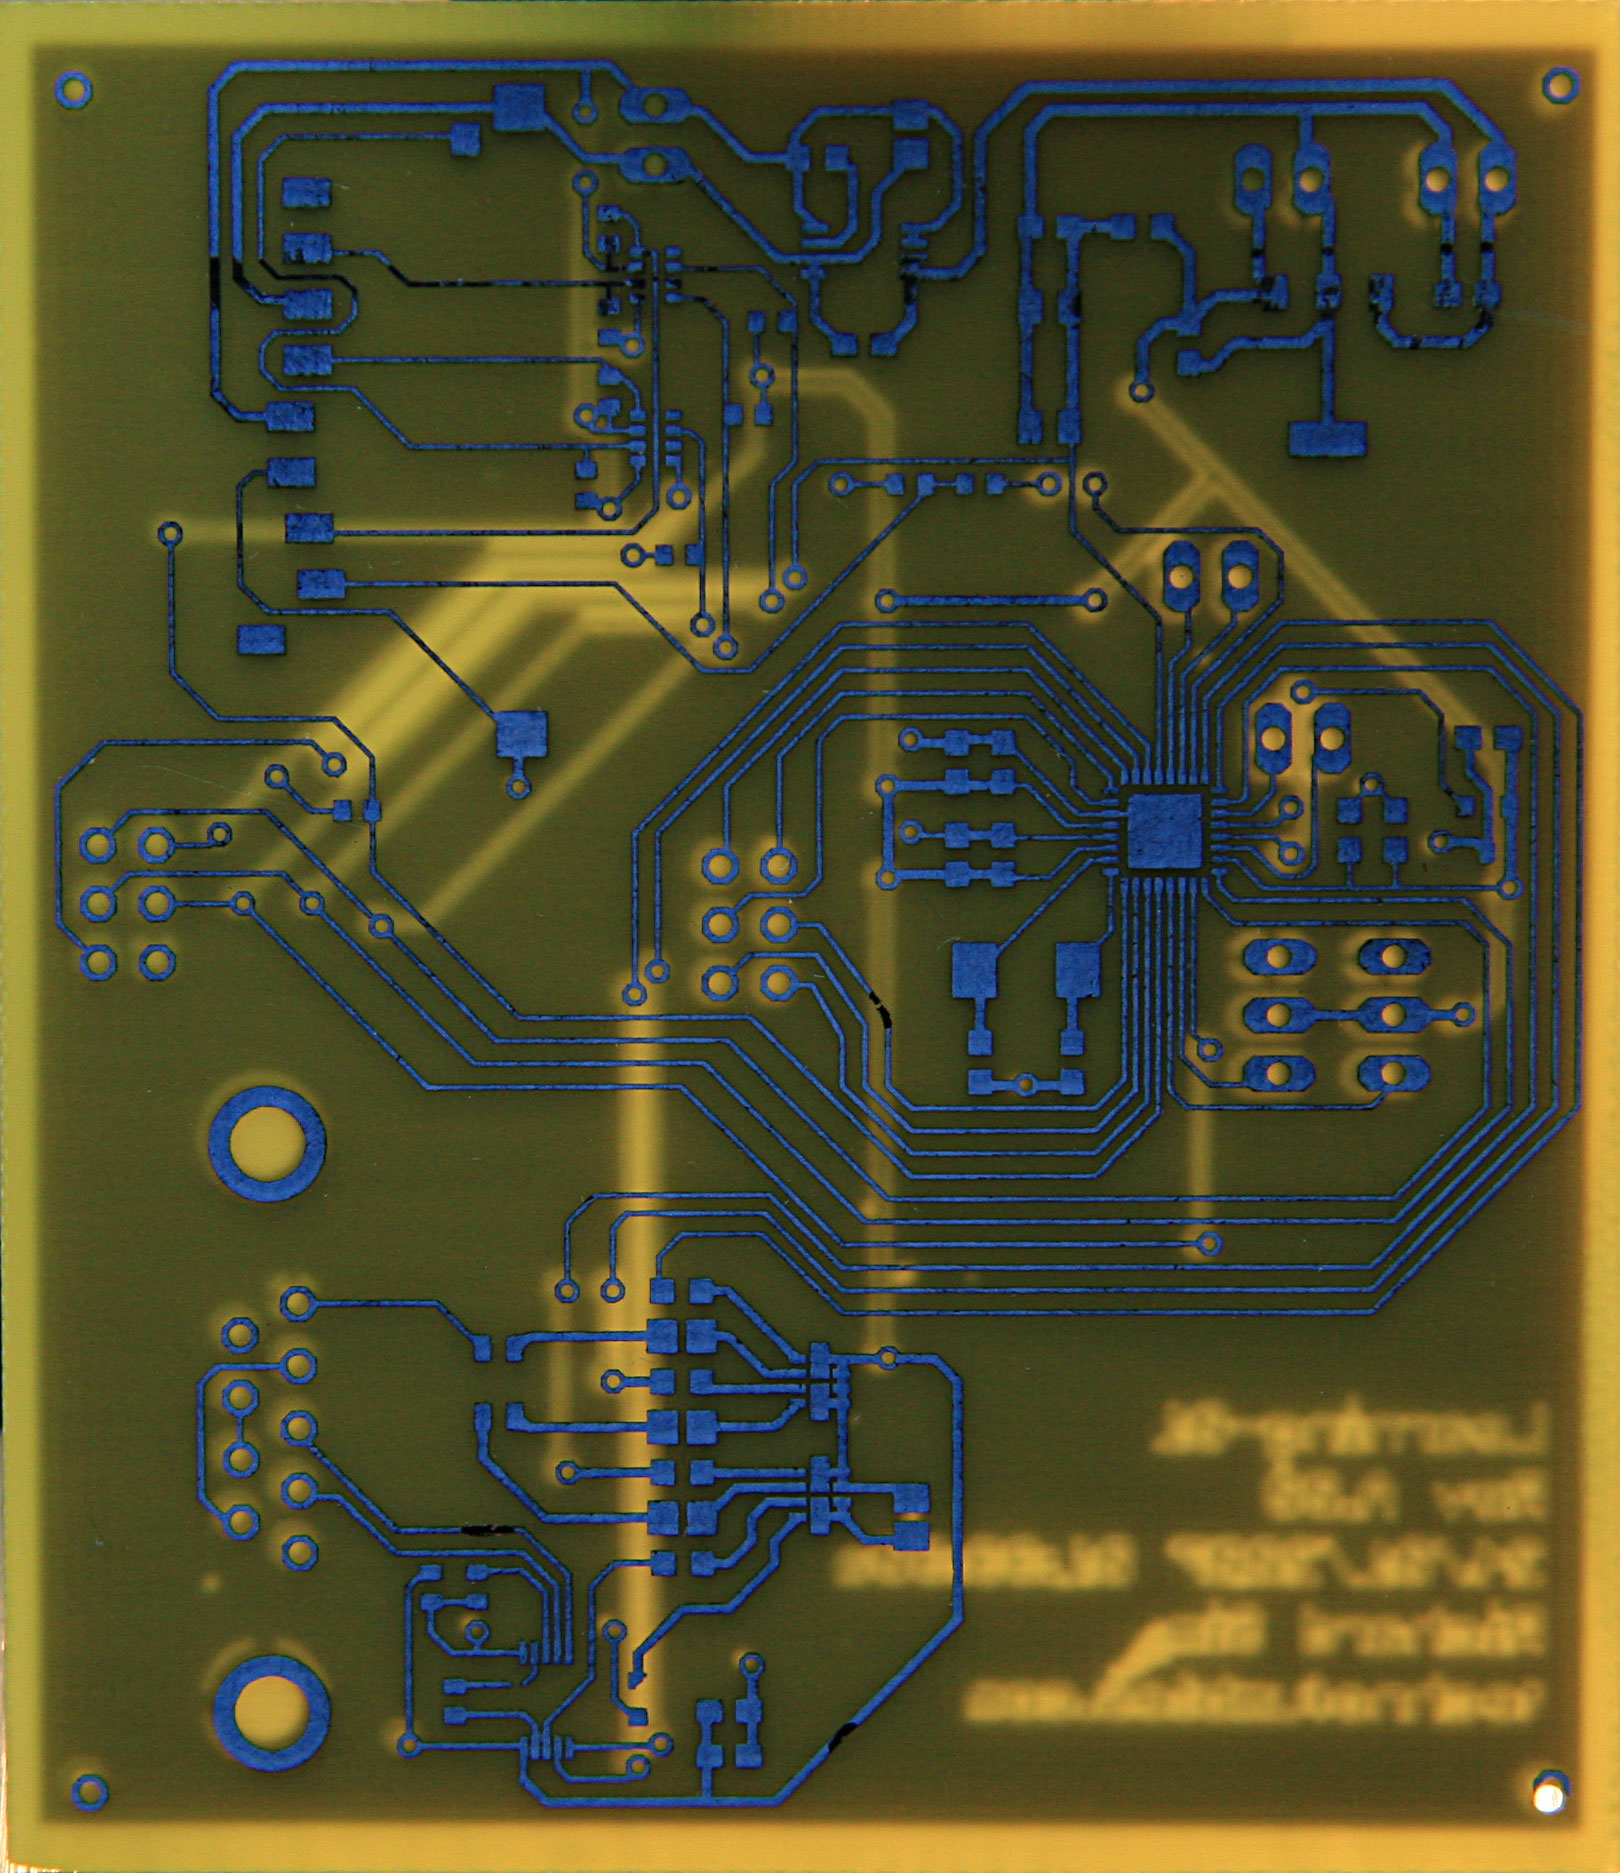 Fumbling Around With Technology Making Printed Circuit Boards A Coworker Has Been Raving For Few Weeks About How Easy And Quick It Is To Make Pcbs At Home Using What Commonly Called The